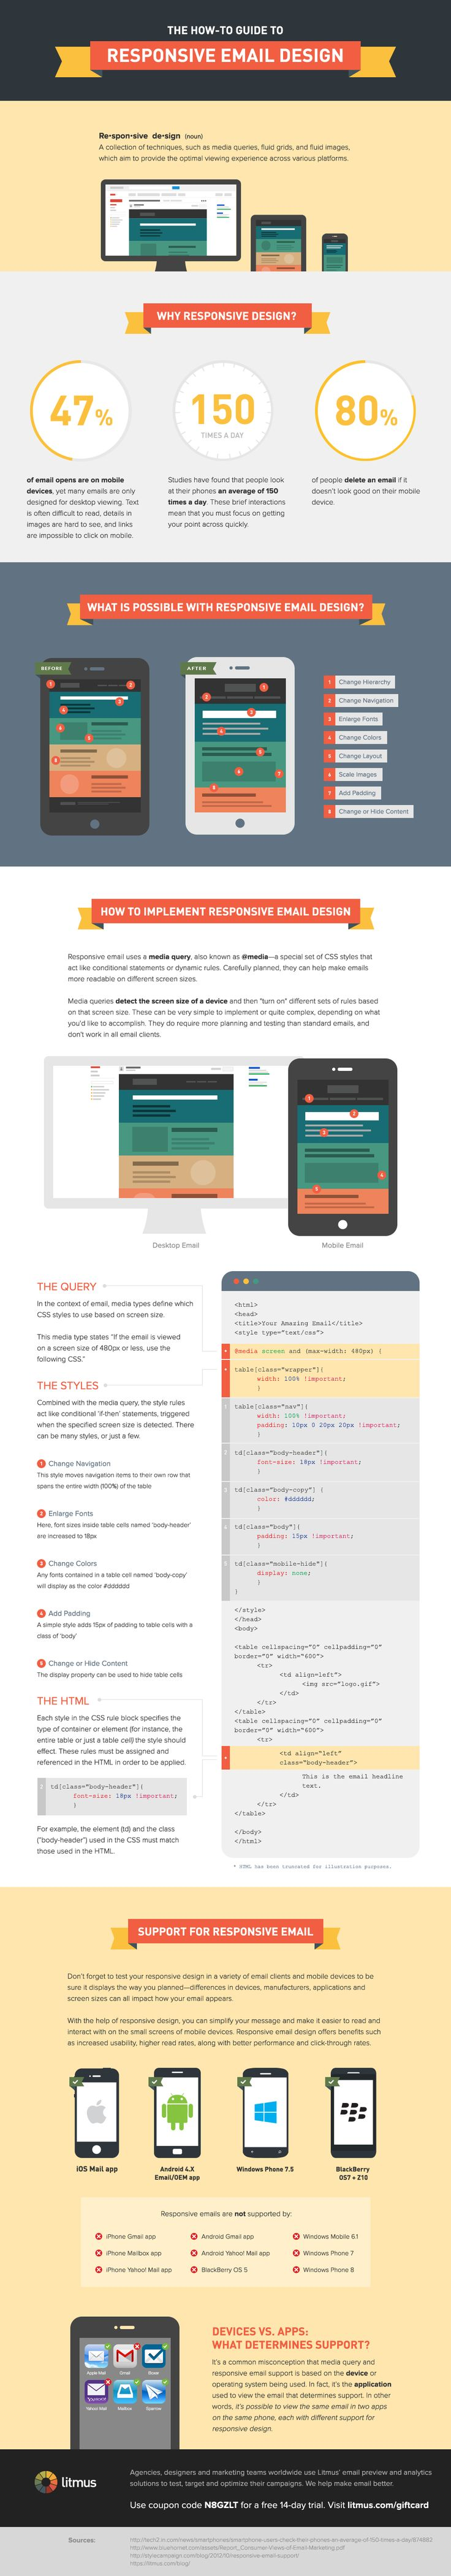 Best 25+ Responsive email ideas on Pinterest | Email templates ...